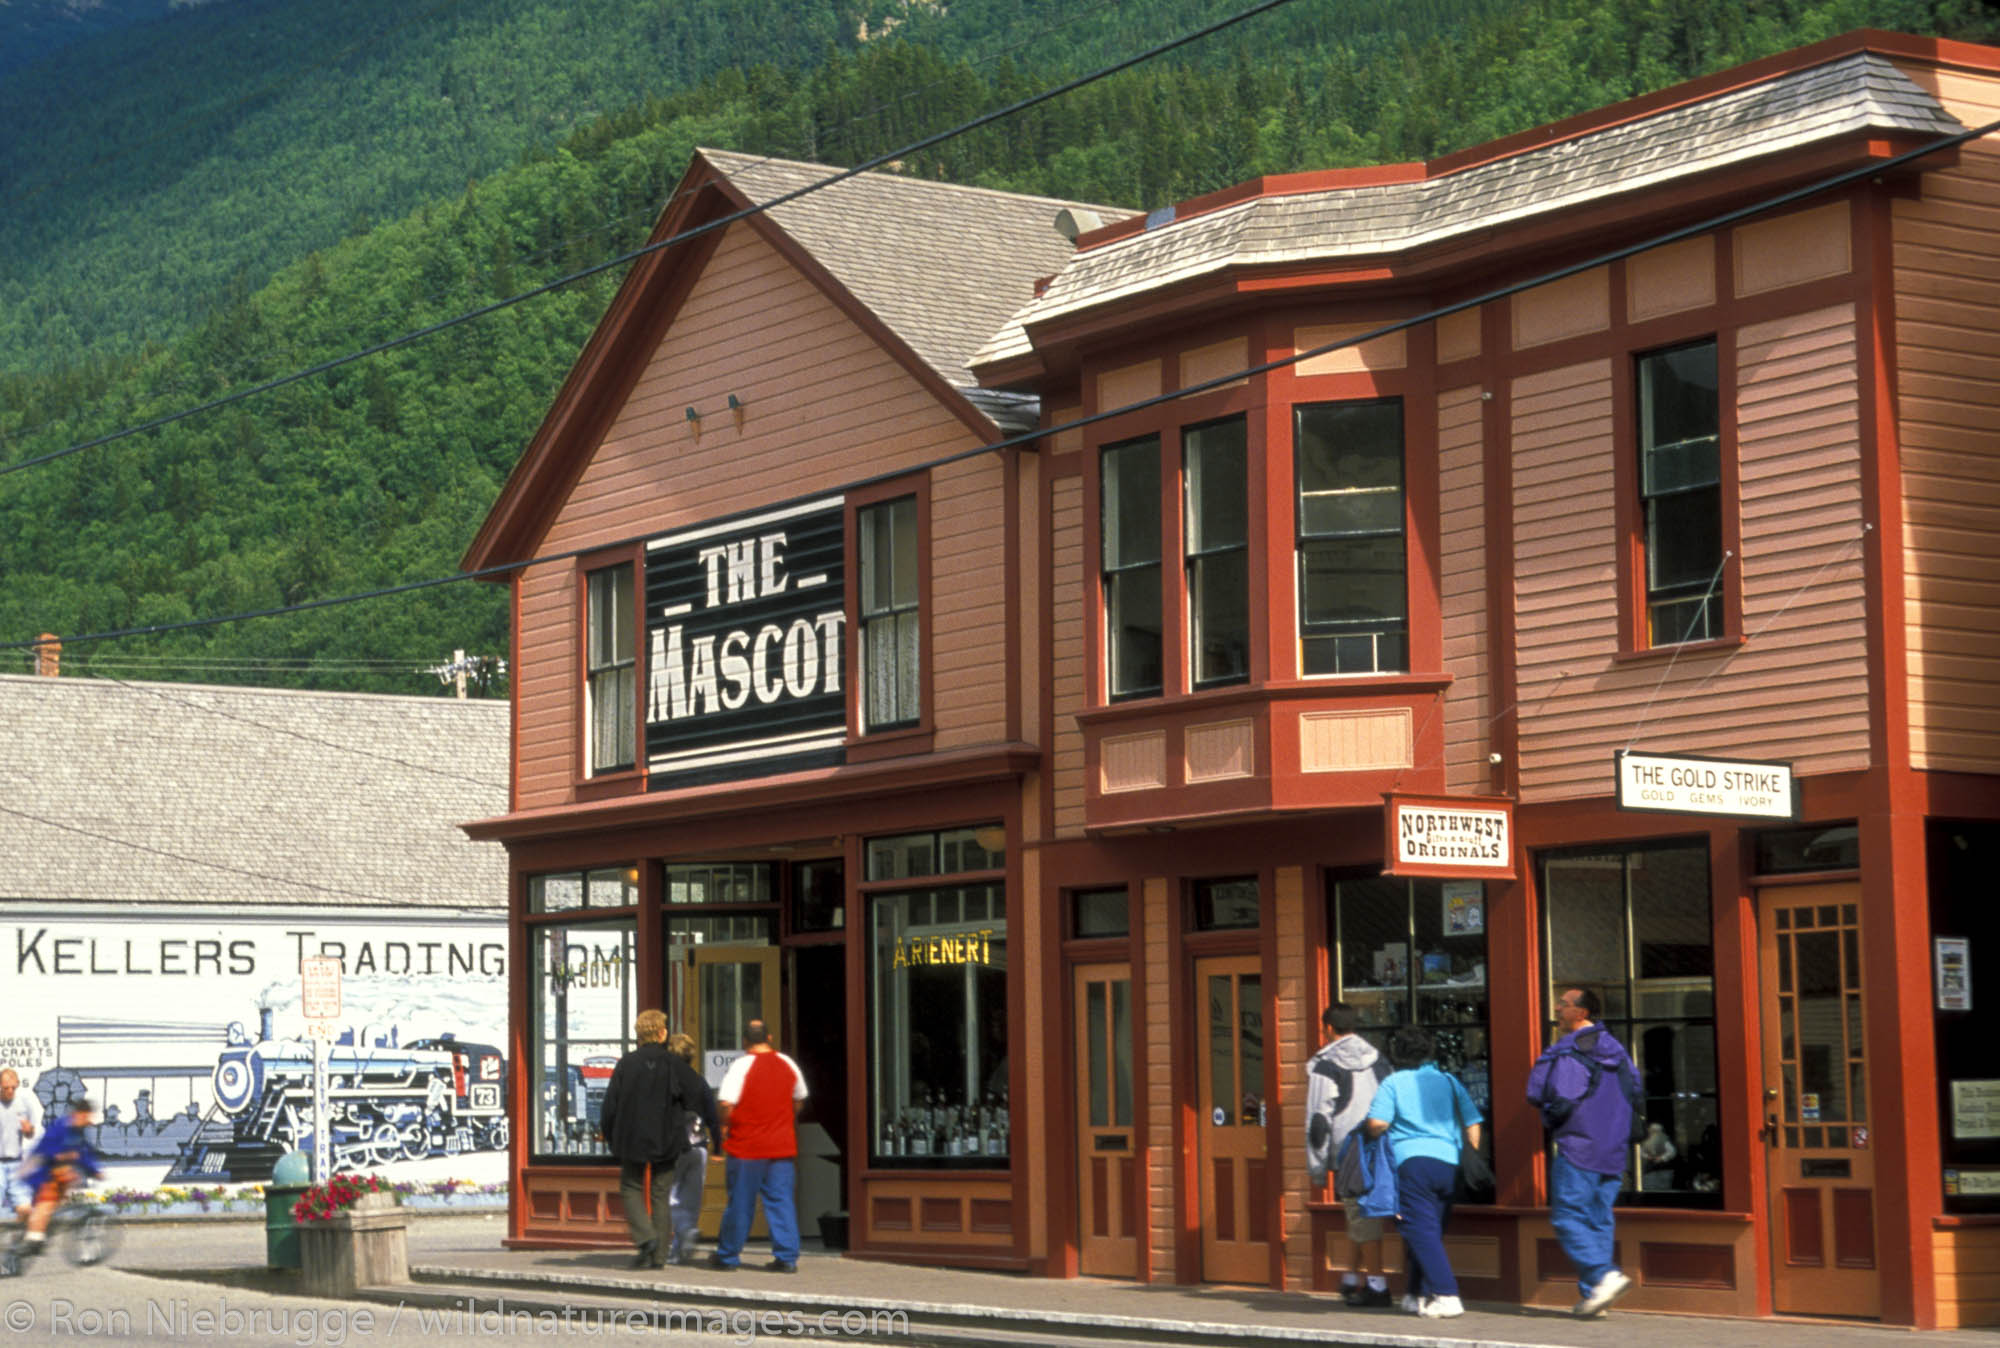 Old restored The Mascot Salon in the town of Skagway, Alaska.